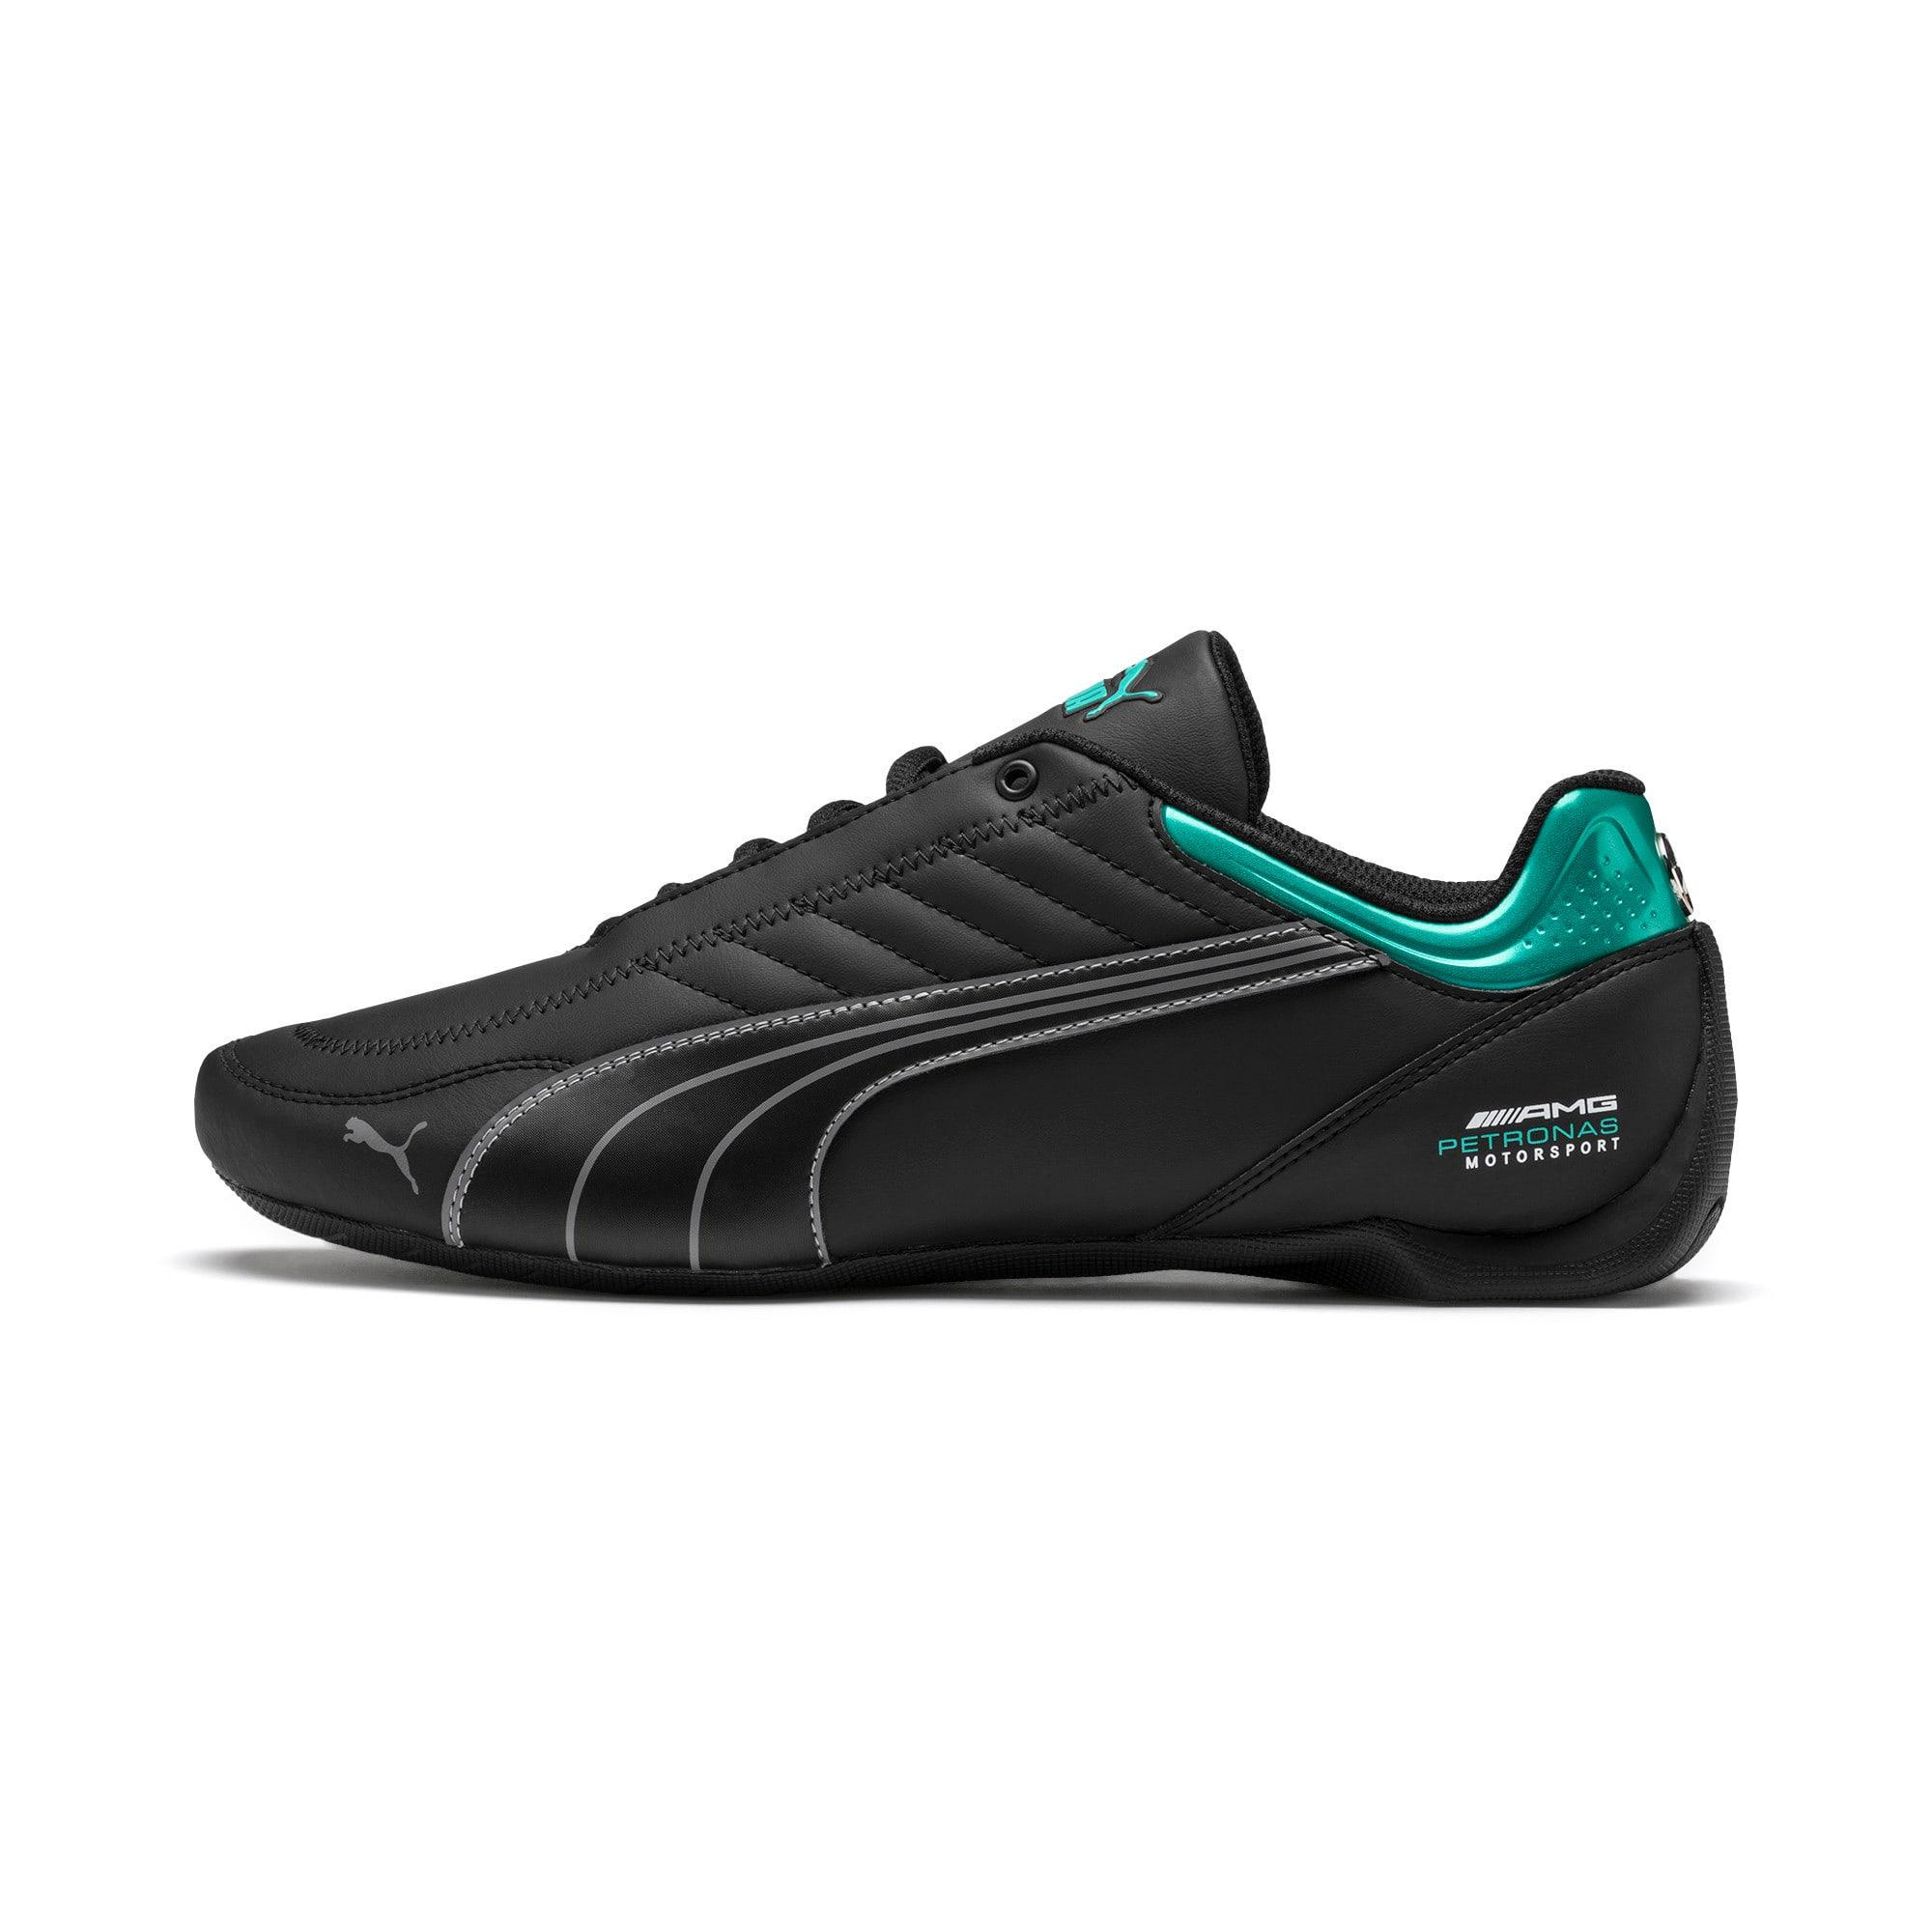 Mercedes Amg Petronas Future Kart Cat Shoes